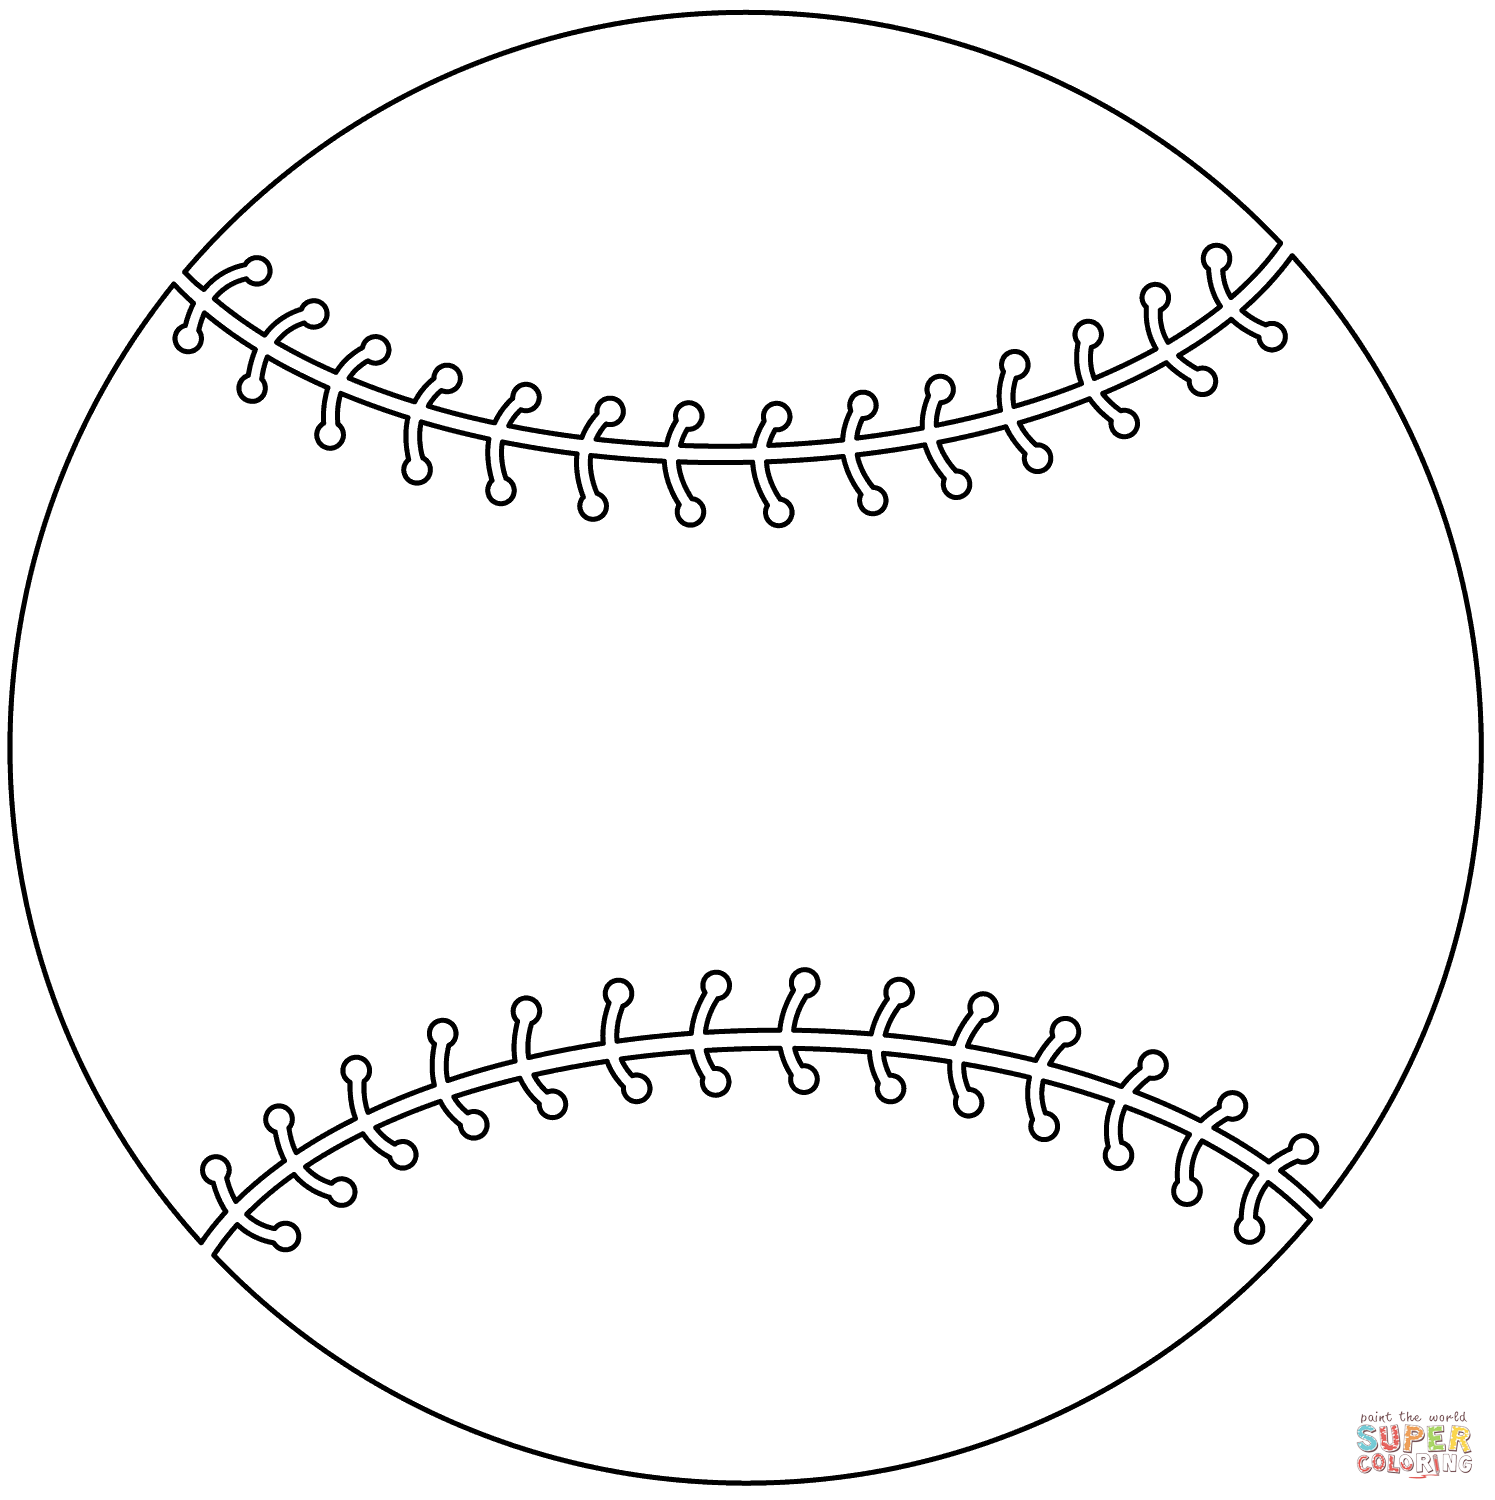 coloring pages of baseball bats - photo#27